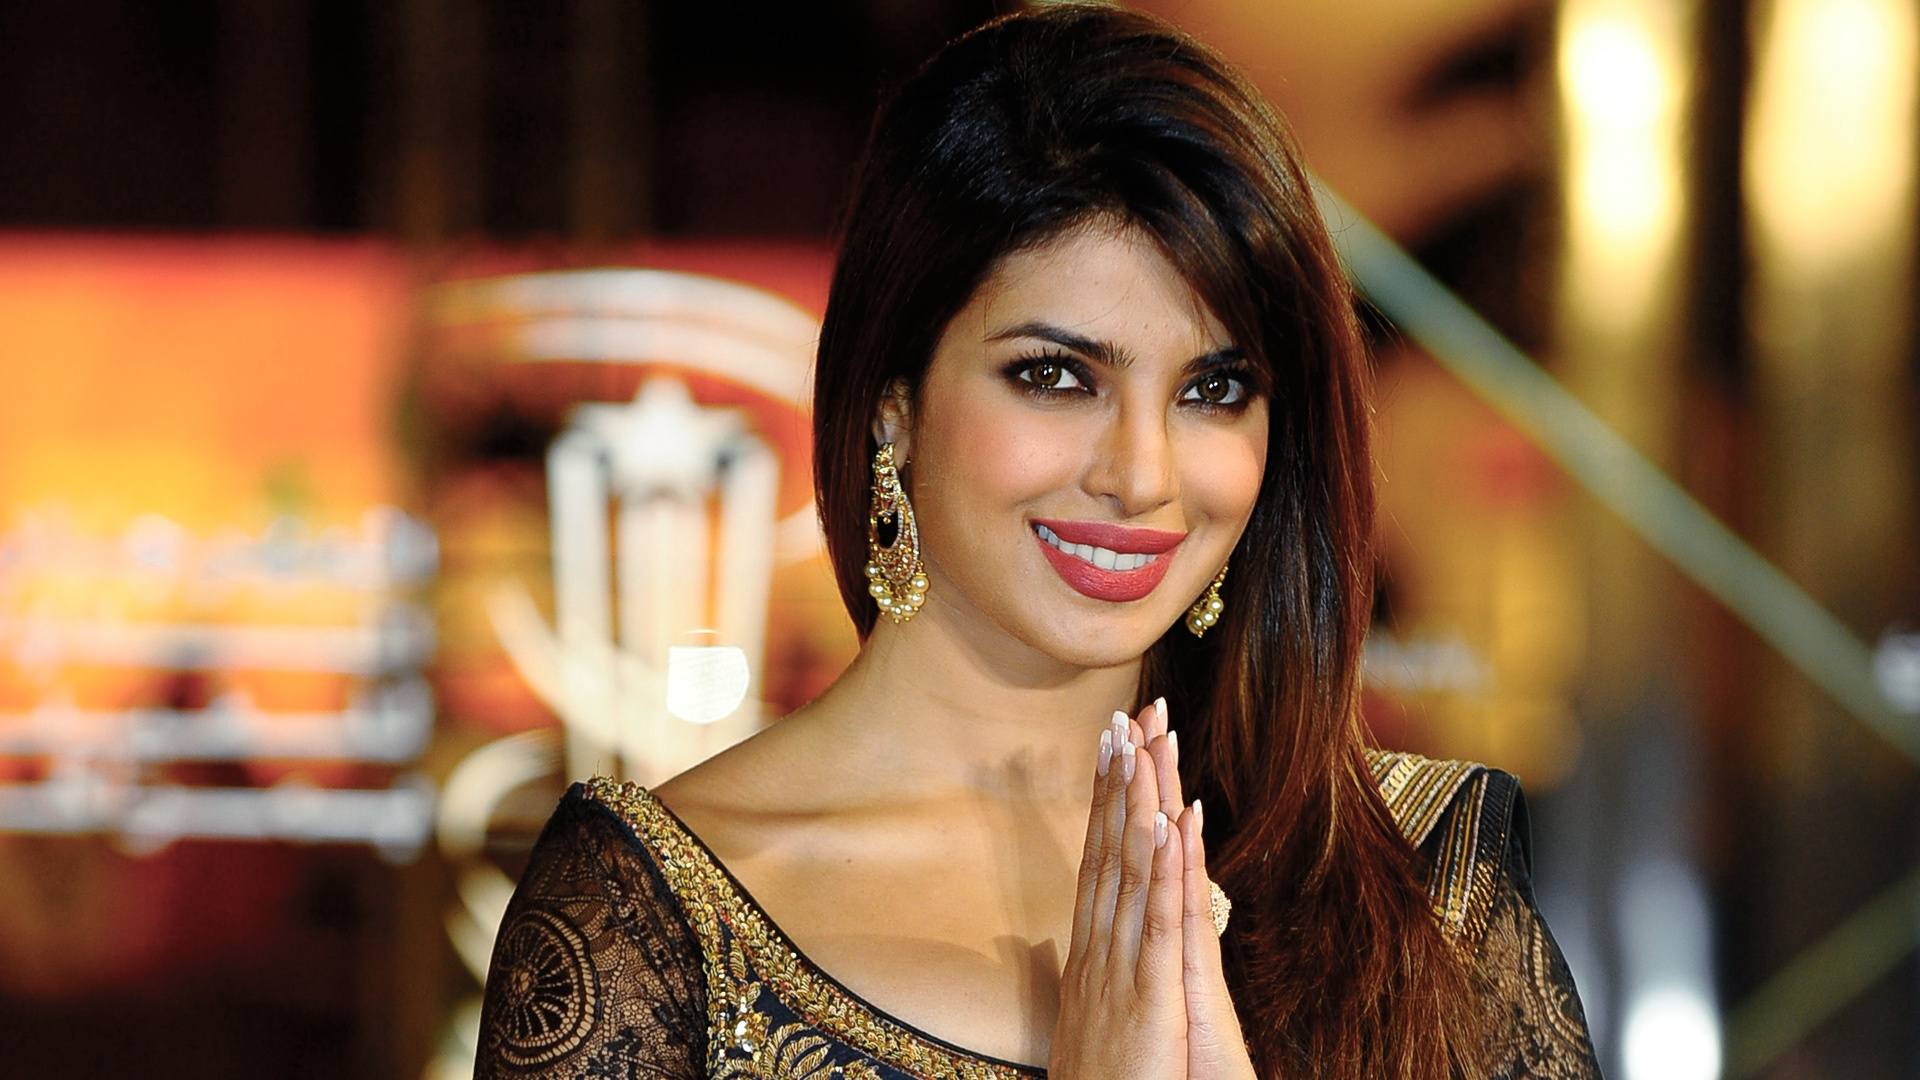 bollywood actress, hqfx wallpapers for free